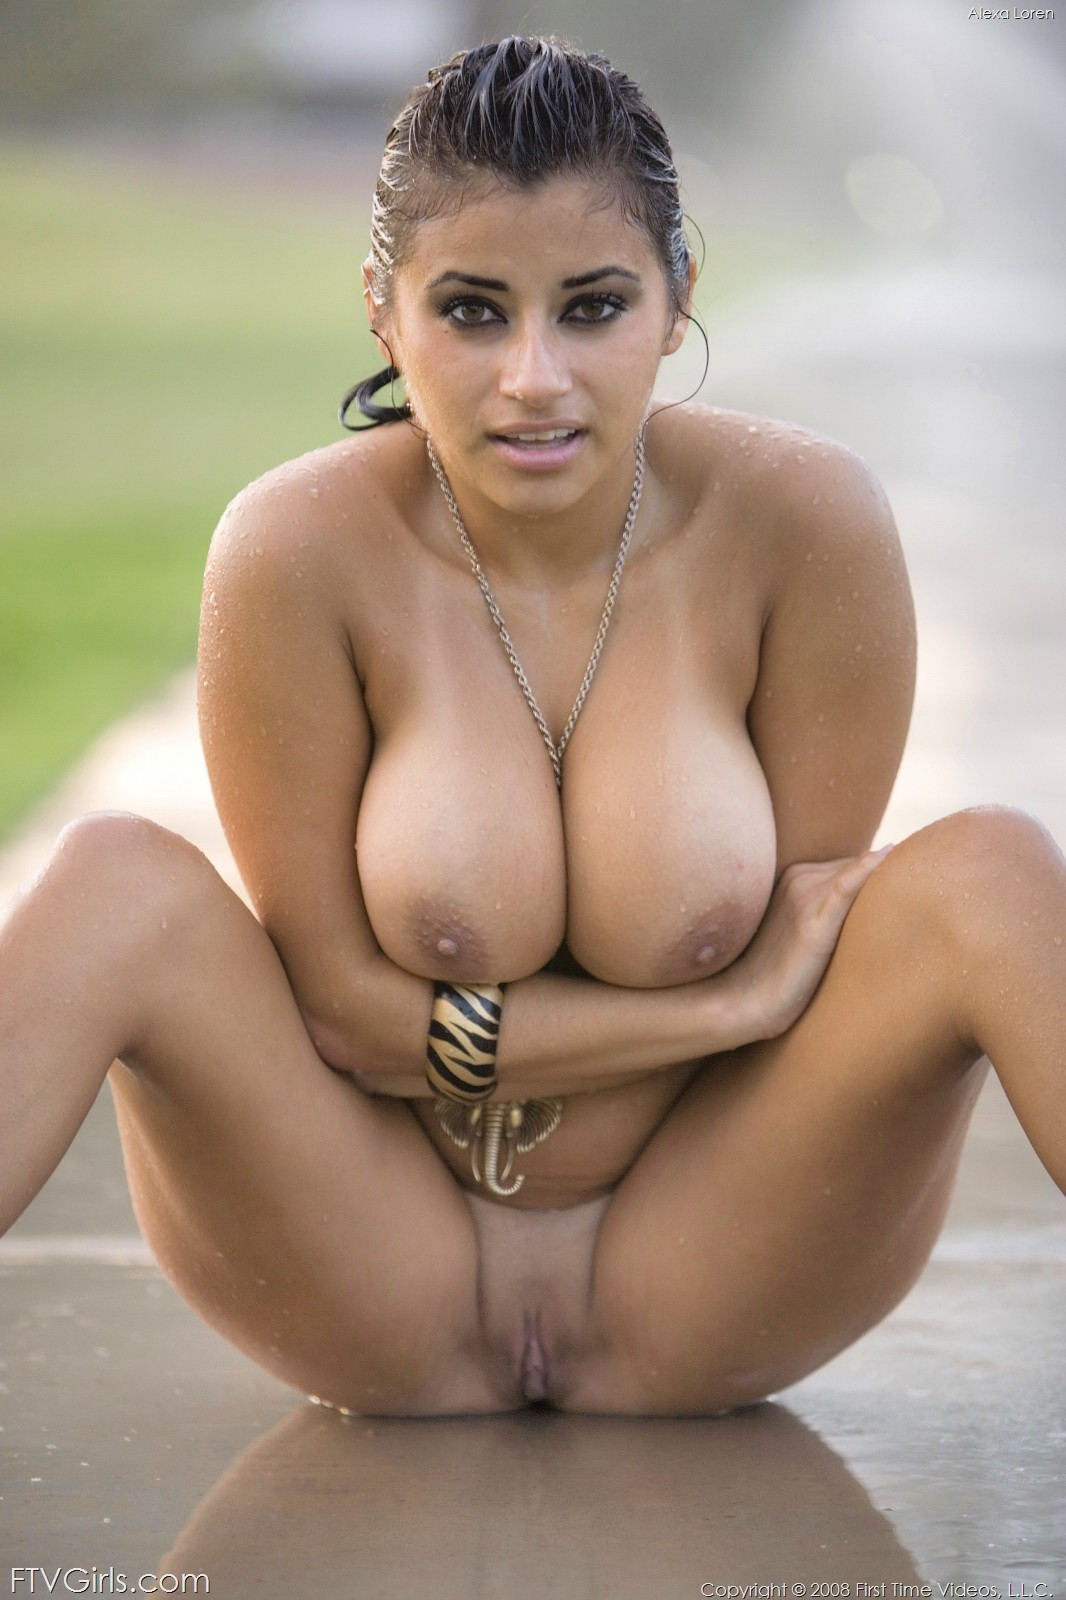 Nude images of women at onlyblowjob